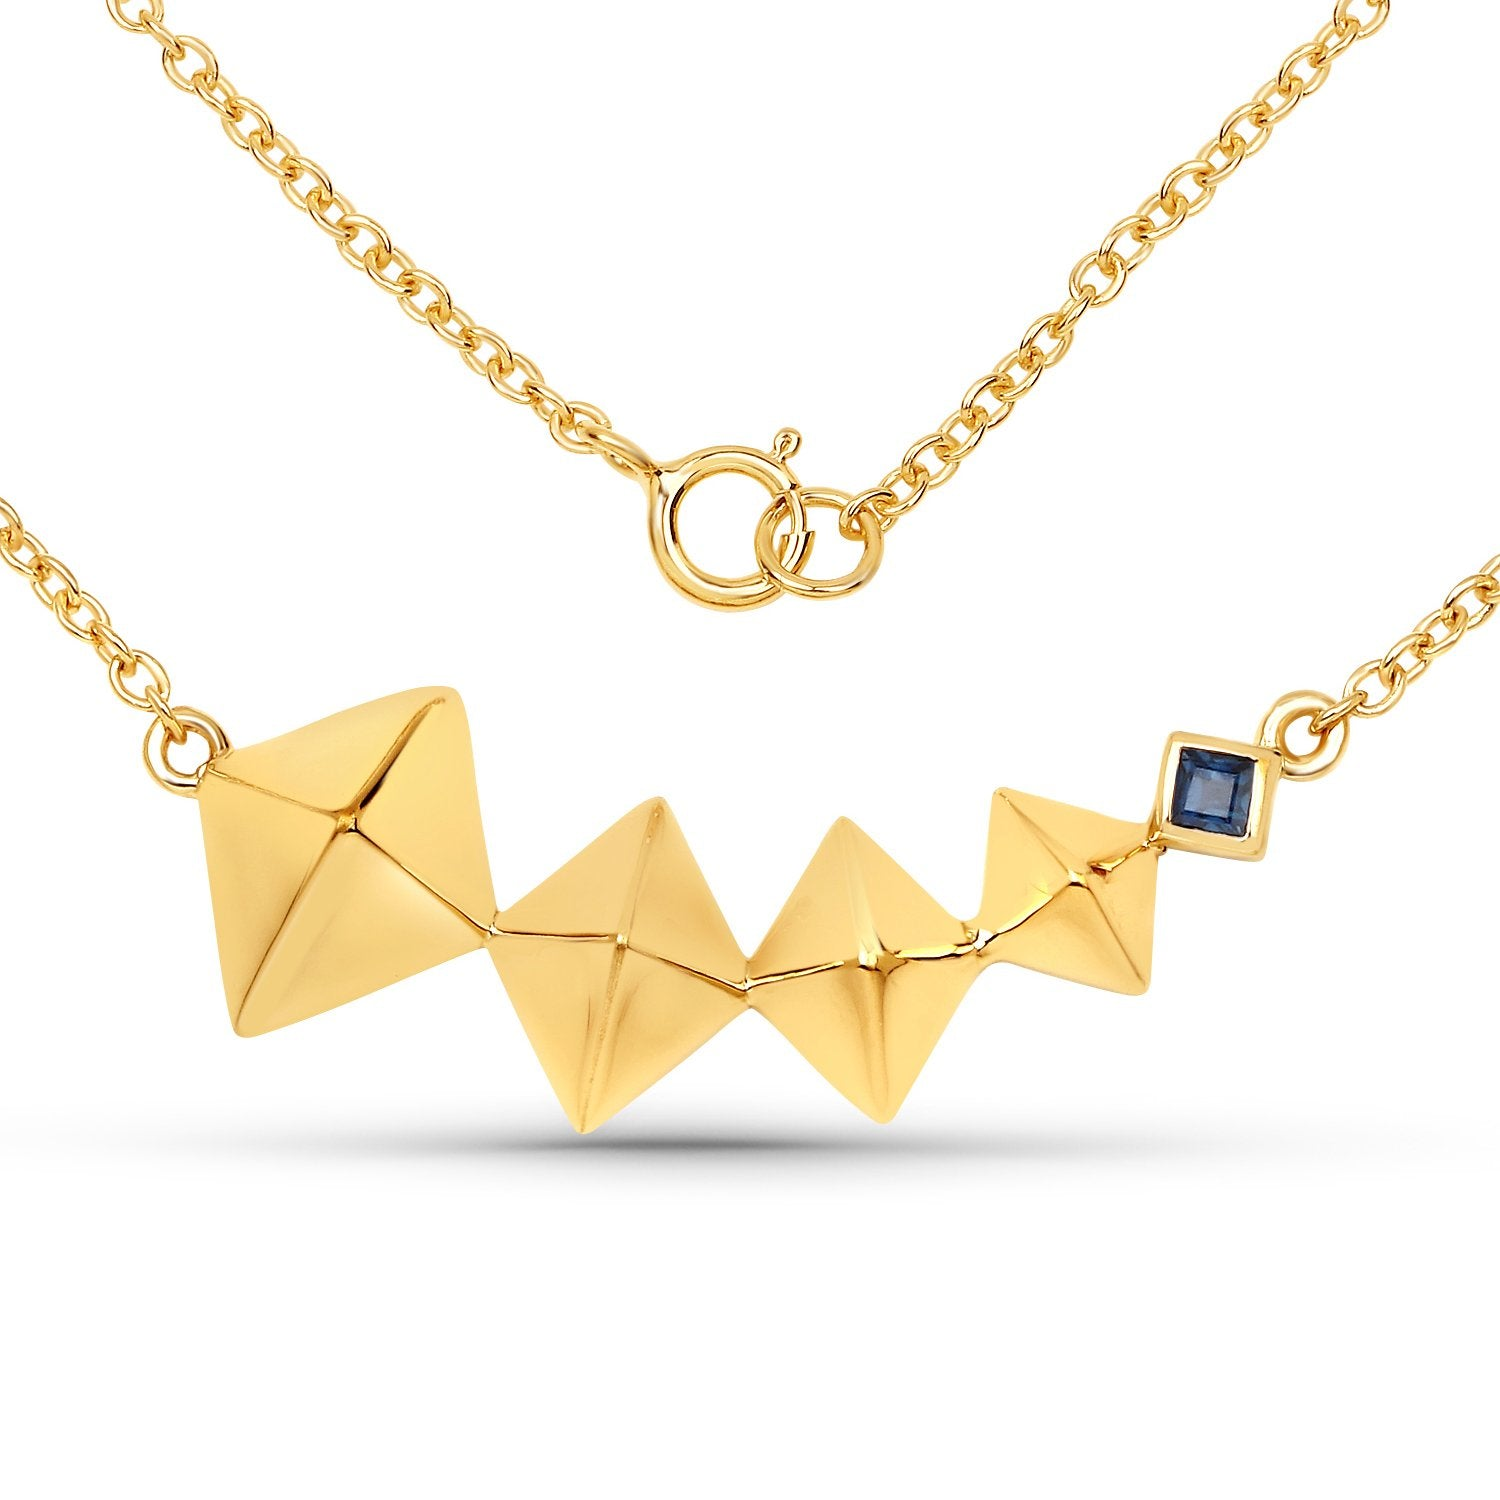 LoveHuang 0.06 Carats Genuine Blue Sapphire Necklace Solid .925 Sterling Silver With 18KT Yellow Gold Plating, 18Inch Chain